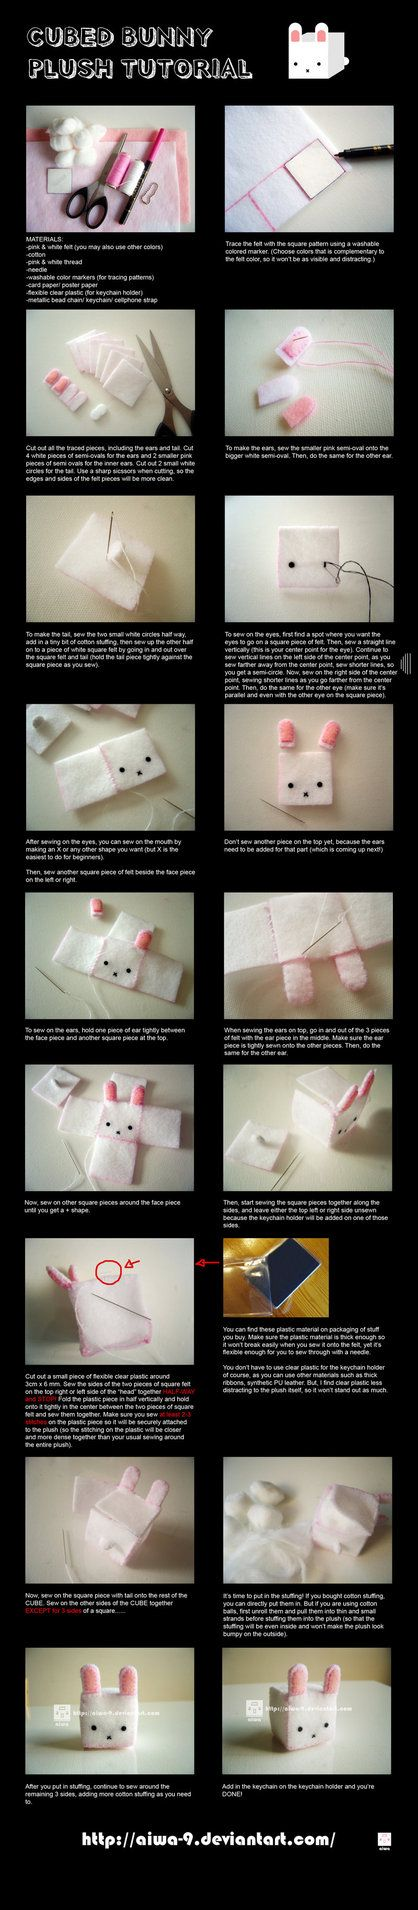 Cubimals! - CUBED bunny plush tutorial by ~aiwa-9 on deviantART